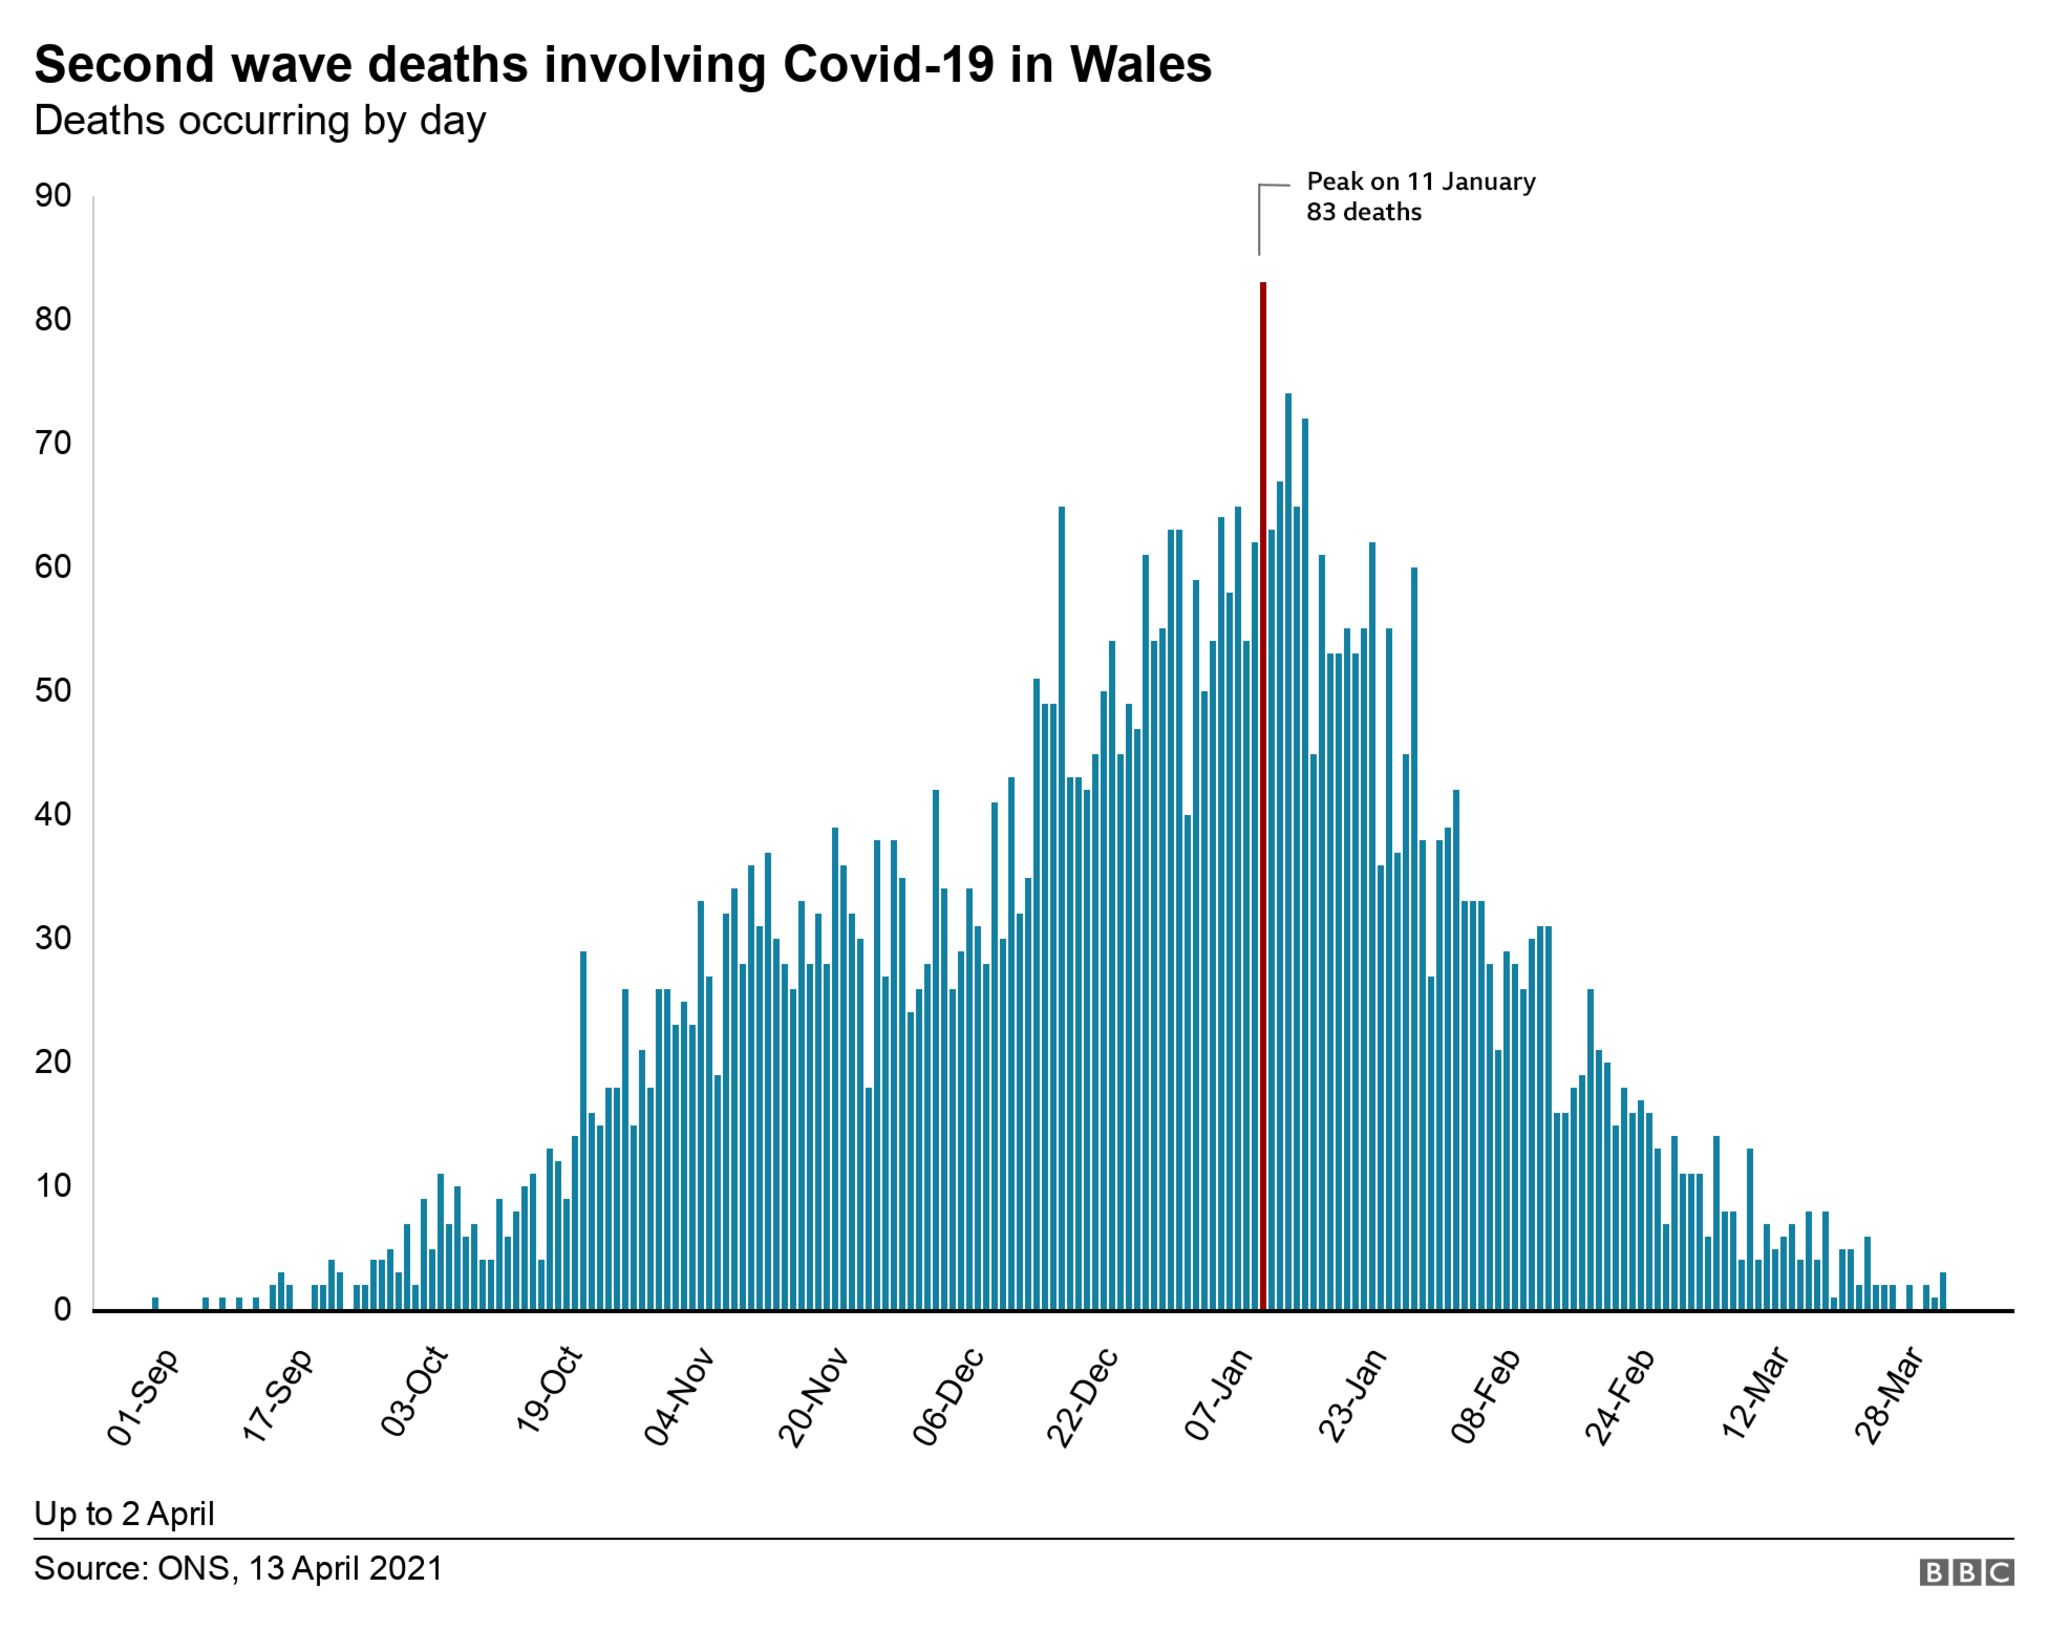 Wales deaths by day since September from Covid, showing second wave